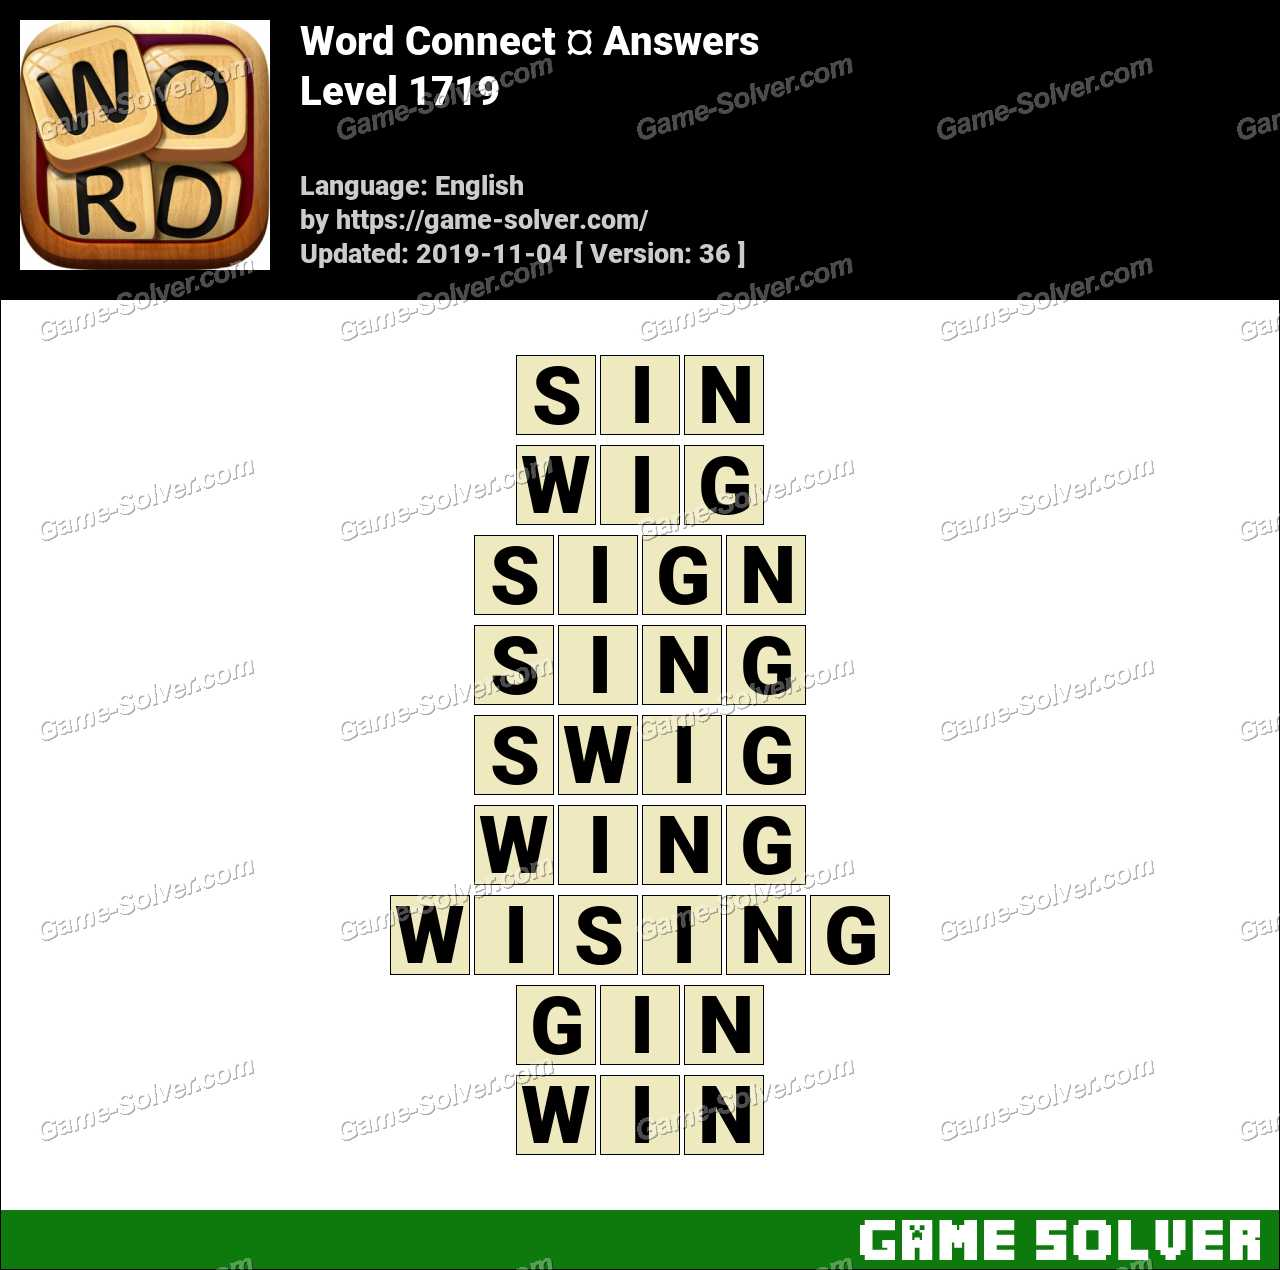 Word Connect Level 1719 Answers